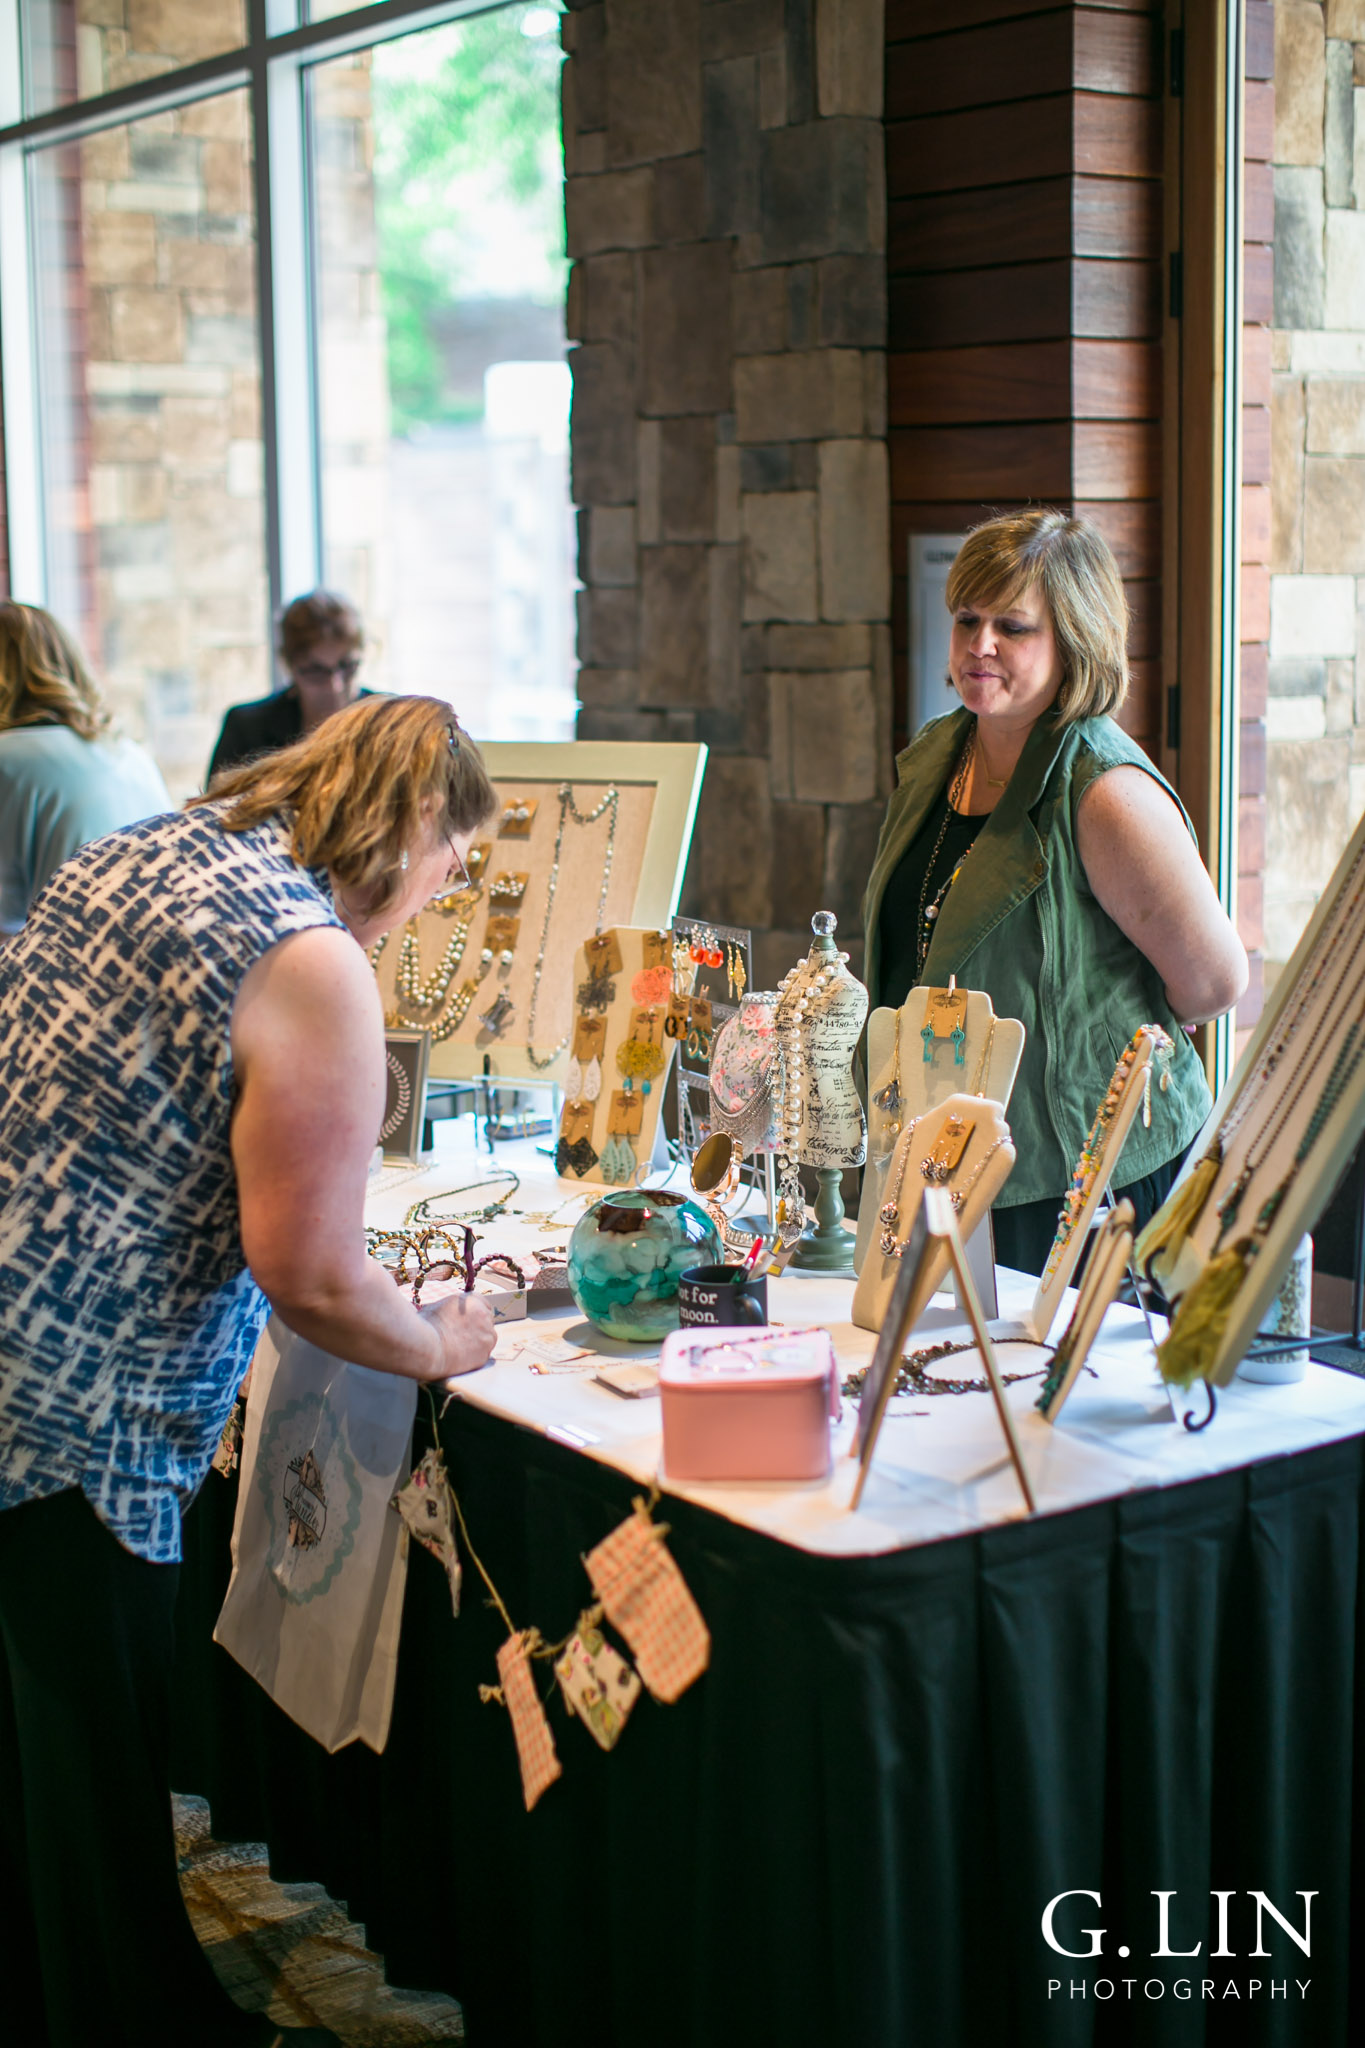 Raleigh Event Photographer | G. Lin Photography | Woman browsing jewelry at table